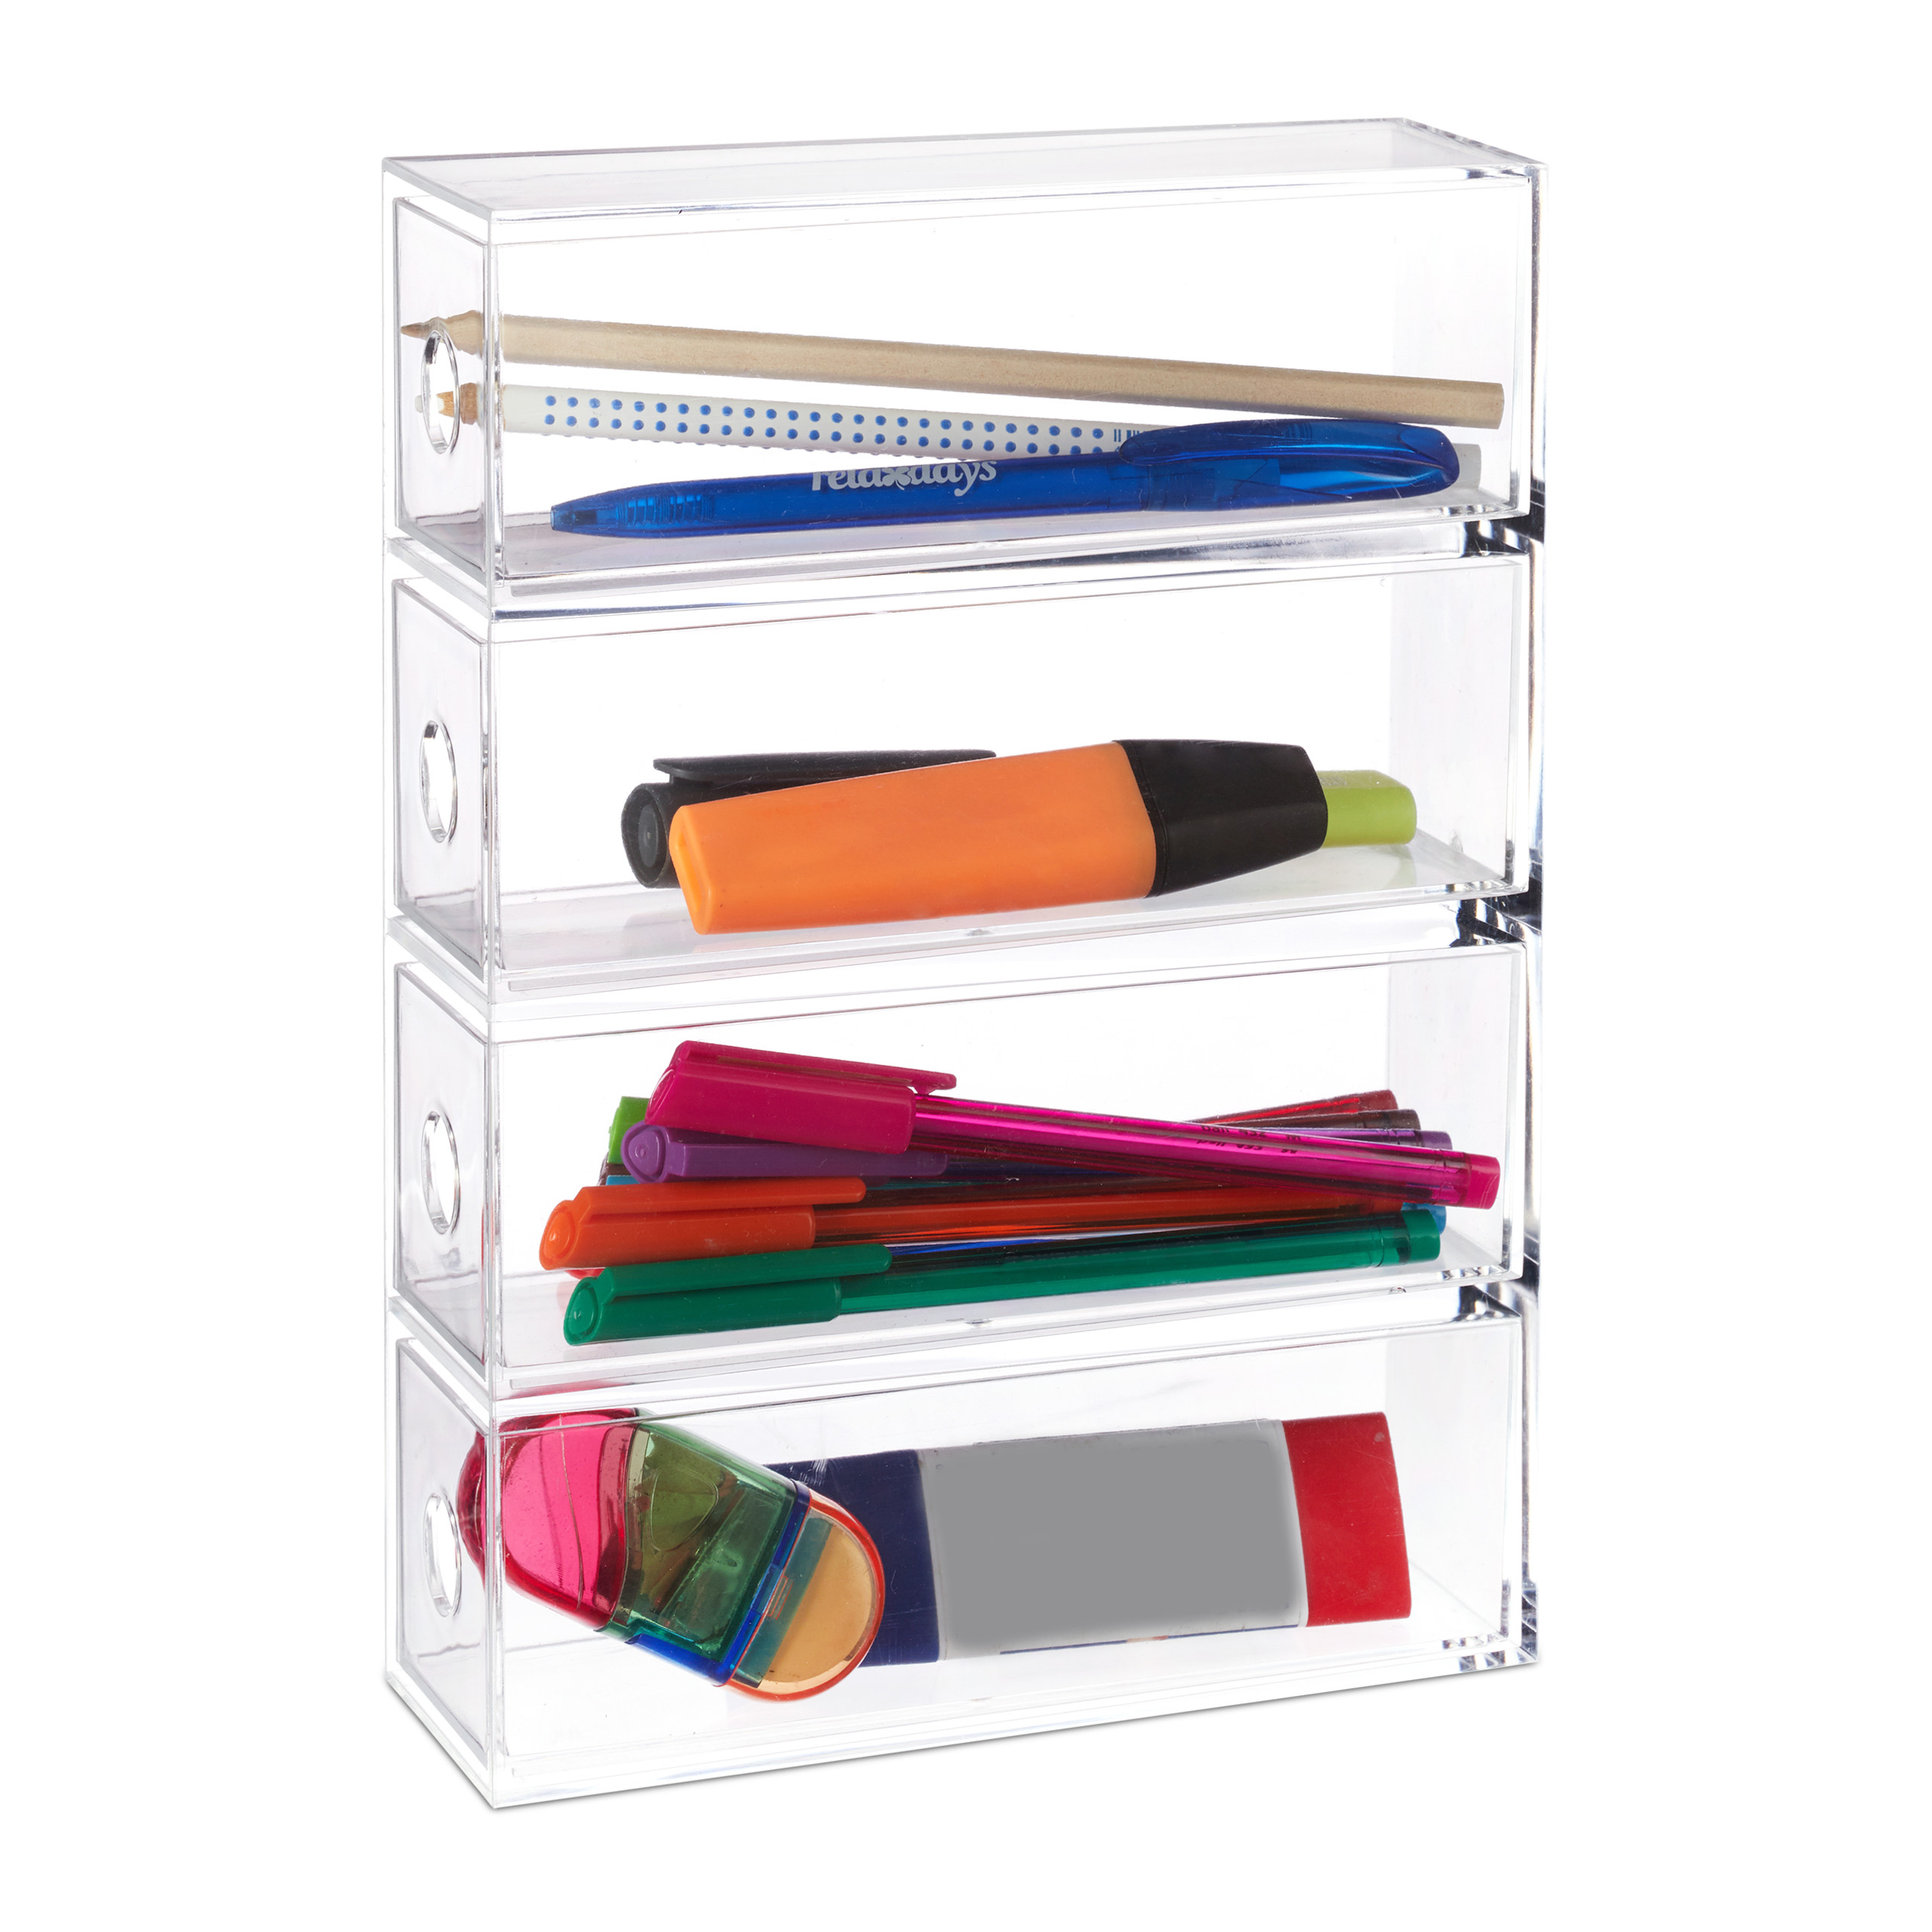 Badezimmer Accessoires Acryl Make Up Organizer Acryl Sortierbox 4 Fächer